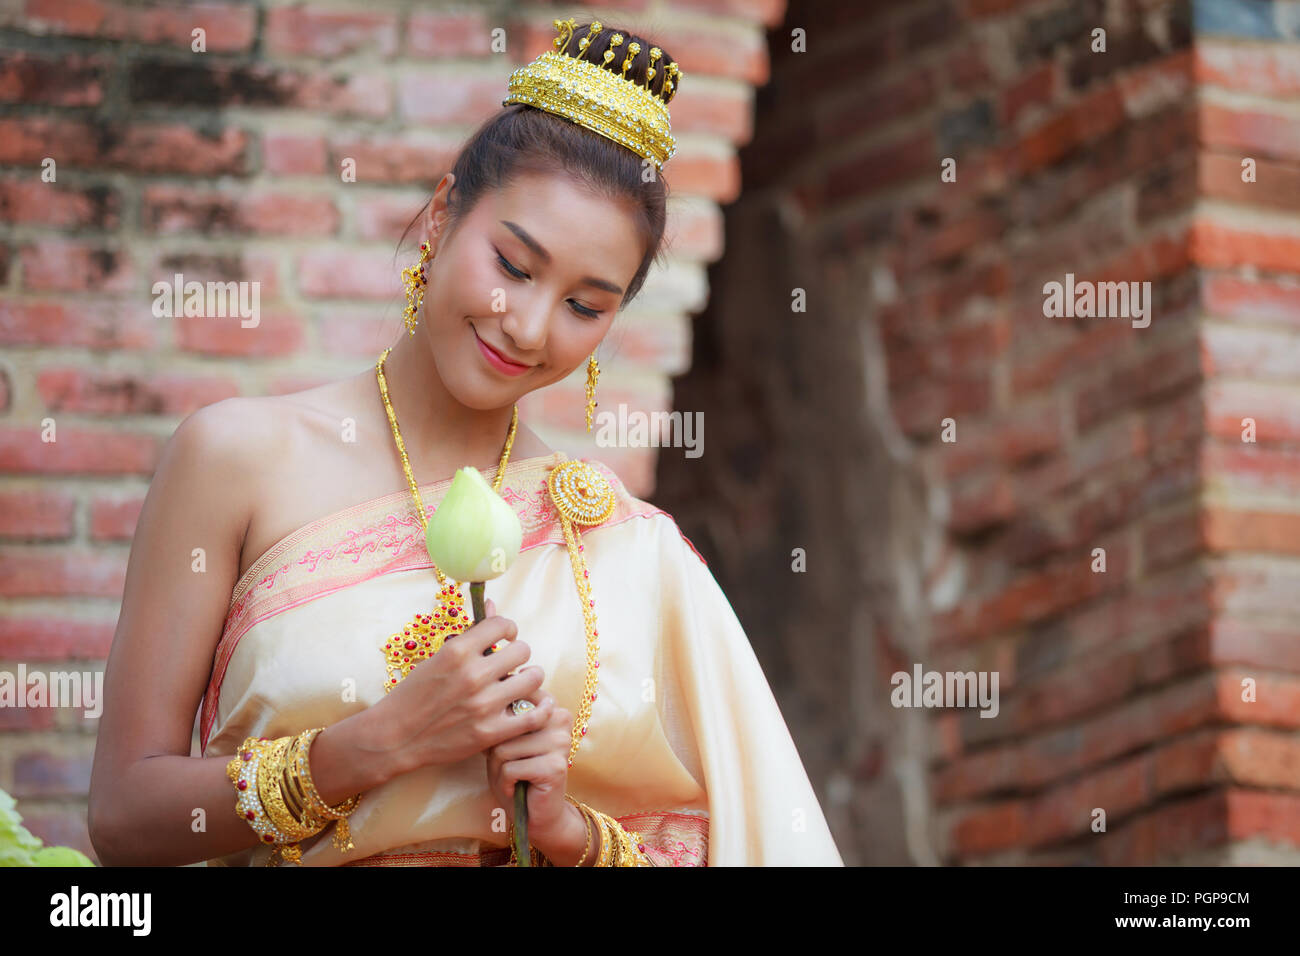 woman in traditional clothes fold lotus flower petals used in rituals of Buddhism religion. A Lotus represents purity of body, speech, and mind, float - Stock Image